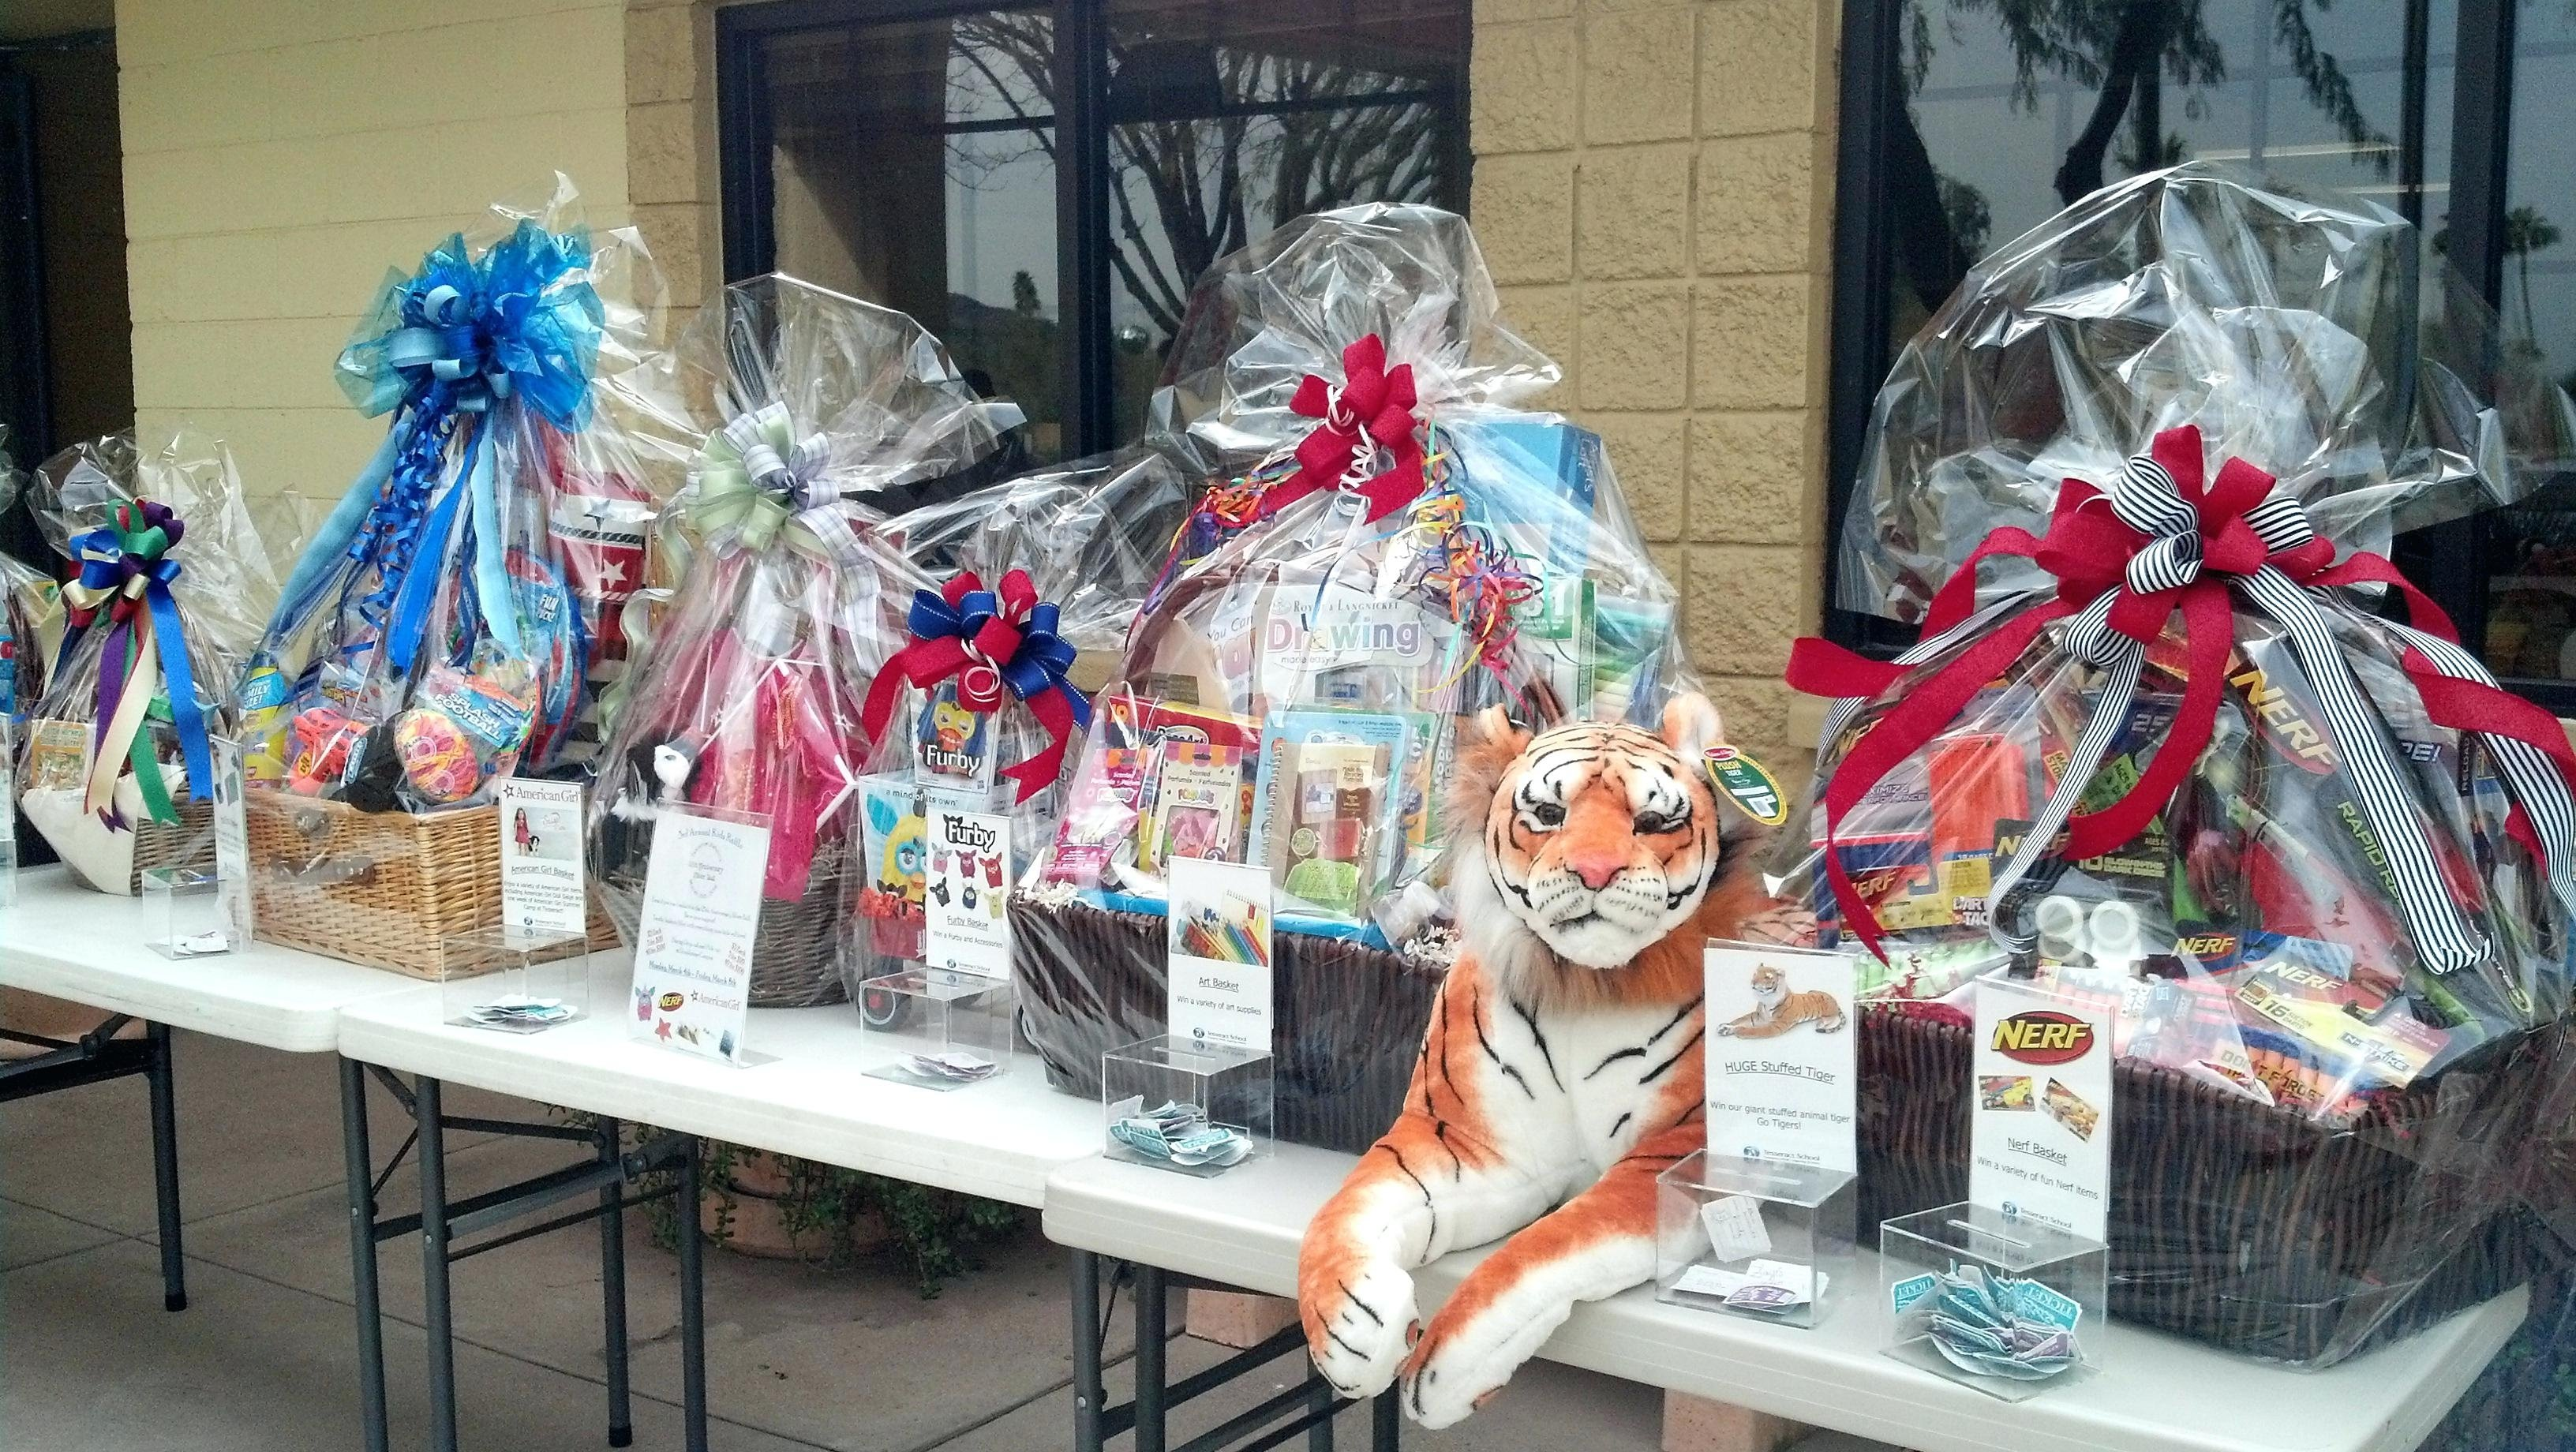 10 Wonderful Gift Basket Ideas For Silent Auction gift basket themes for fundraisers theme ideas fundraiser school 2021